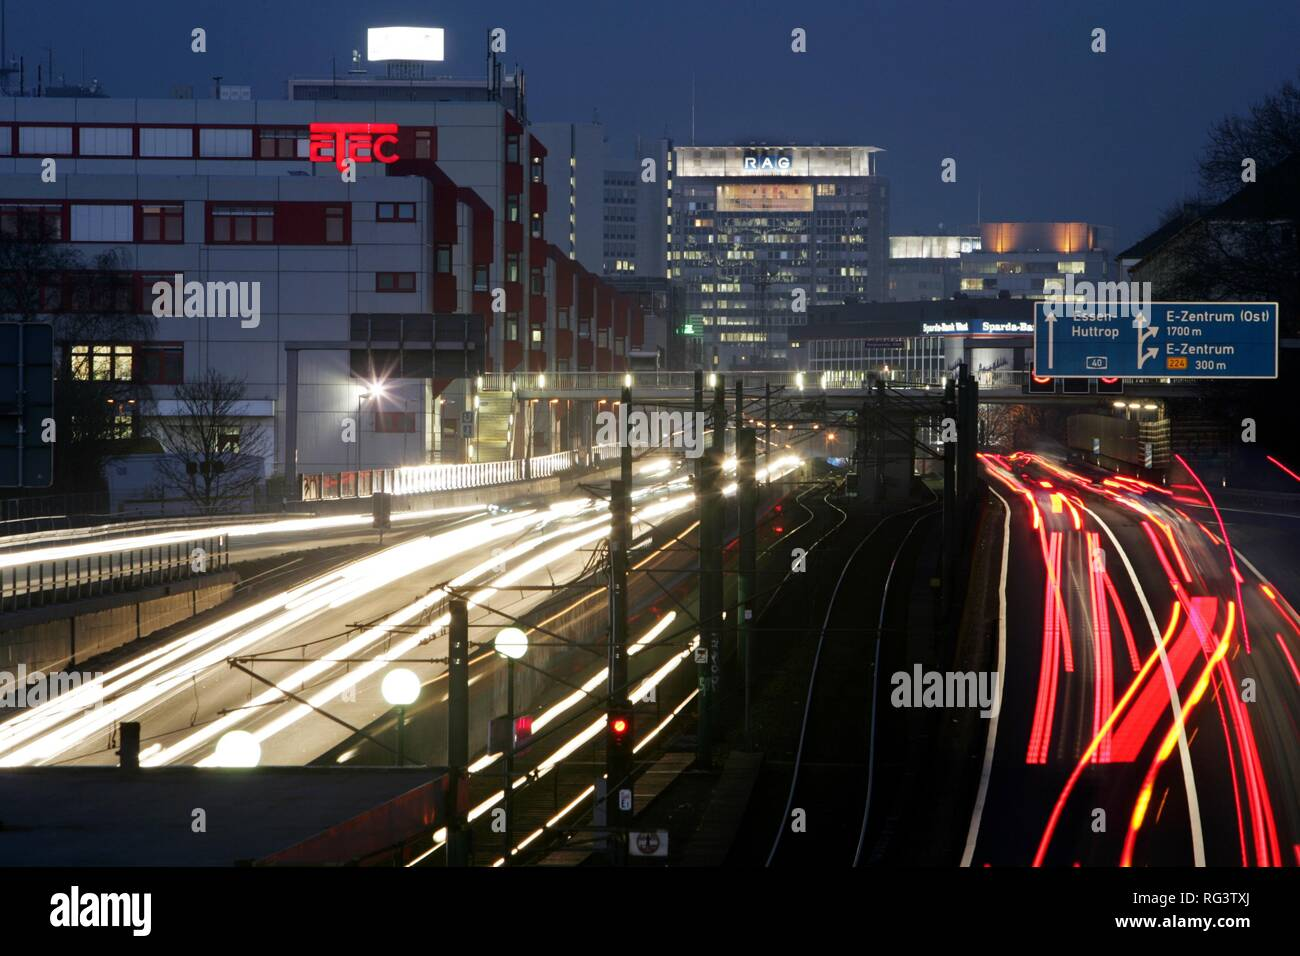 DEU, Federal Republic of Germany, Essen : Motorway A 40, city centr of Essen. Stock Photo